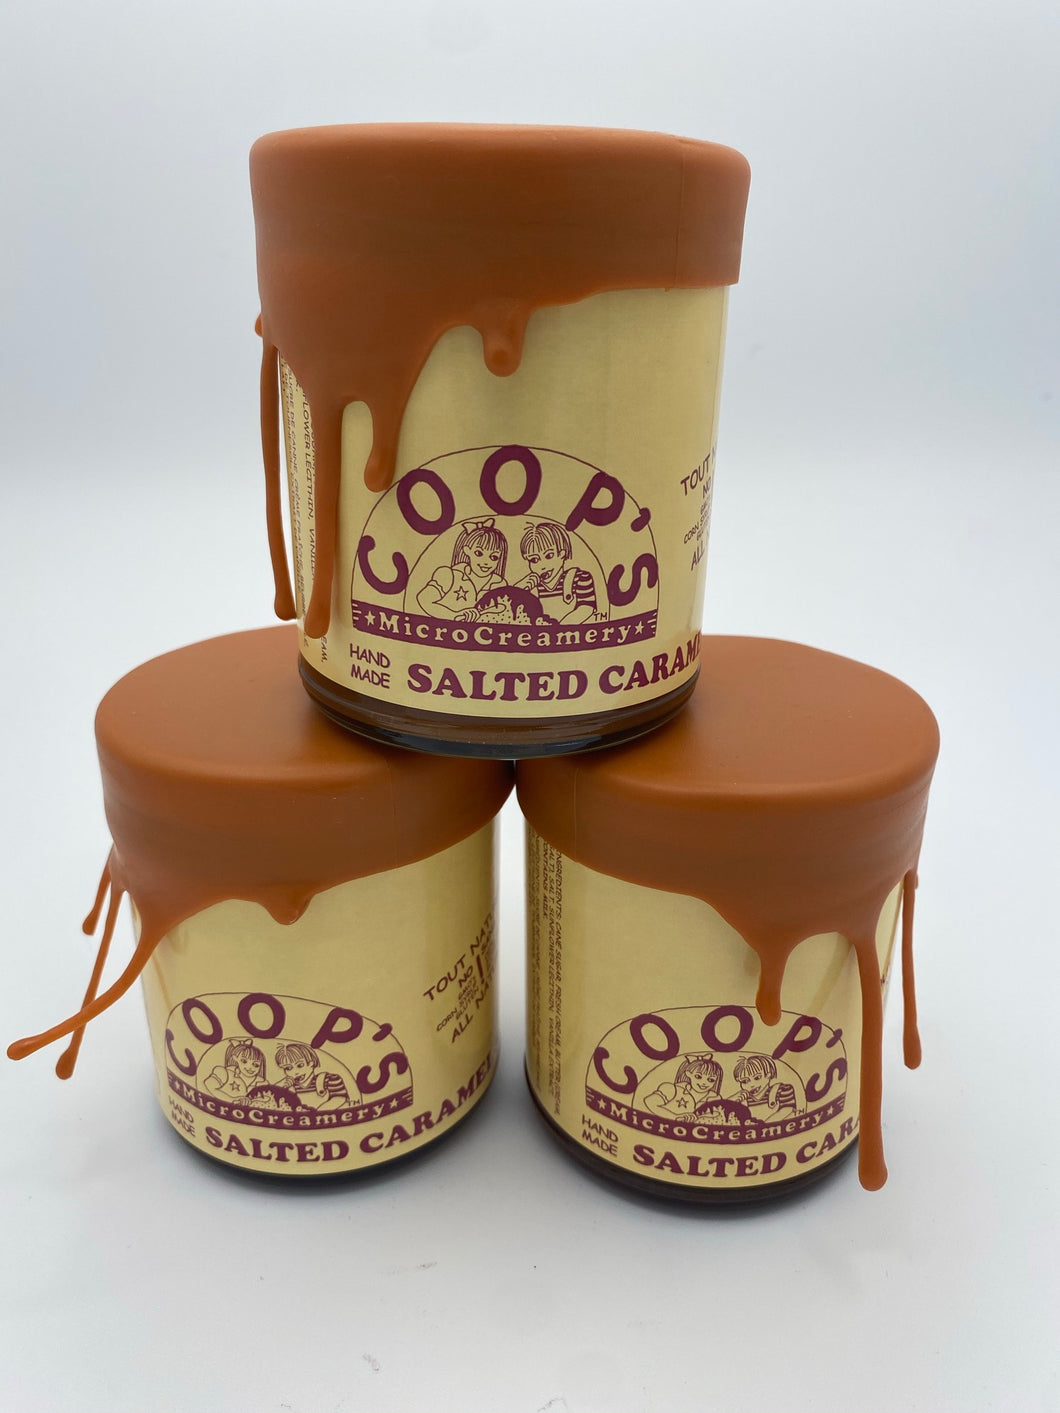 Salted Caramel Sauce - Coops Microcreamery